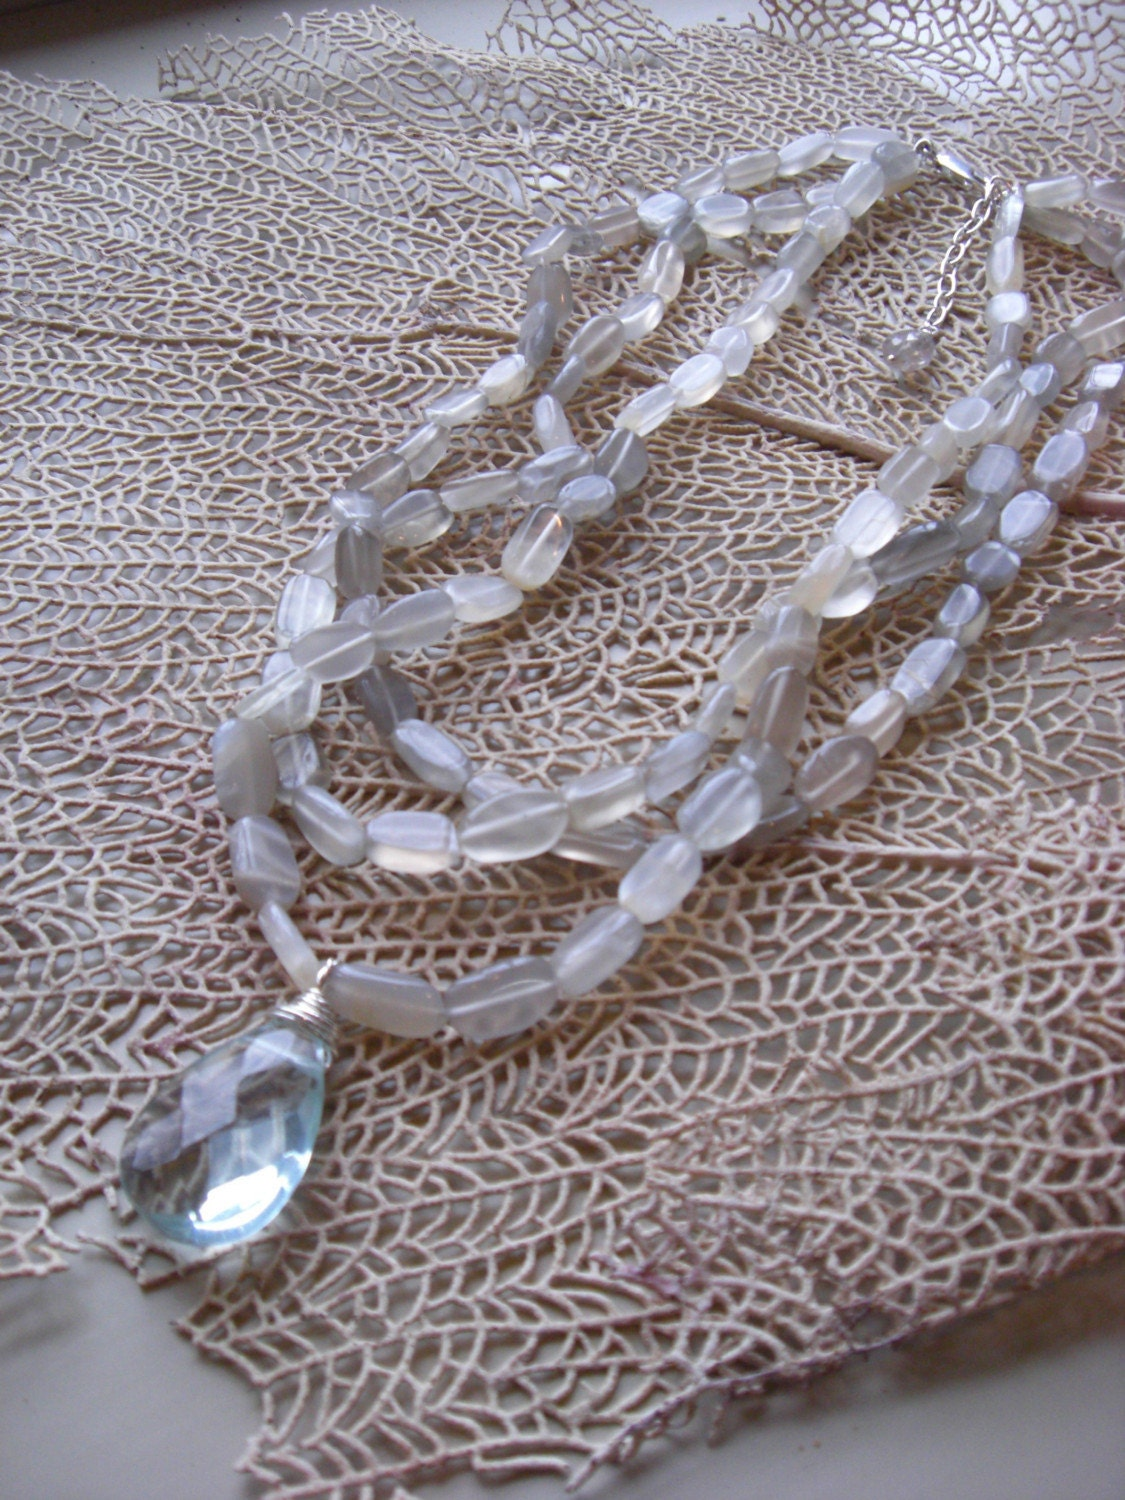 OCEANIA MULTISTRAND NECKLACE, AQUA QUARTZ, MOONSTONE, STERLING SILVER, LABRADORITE